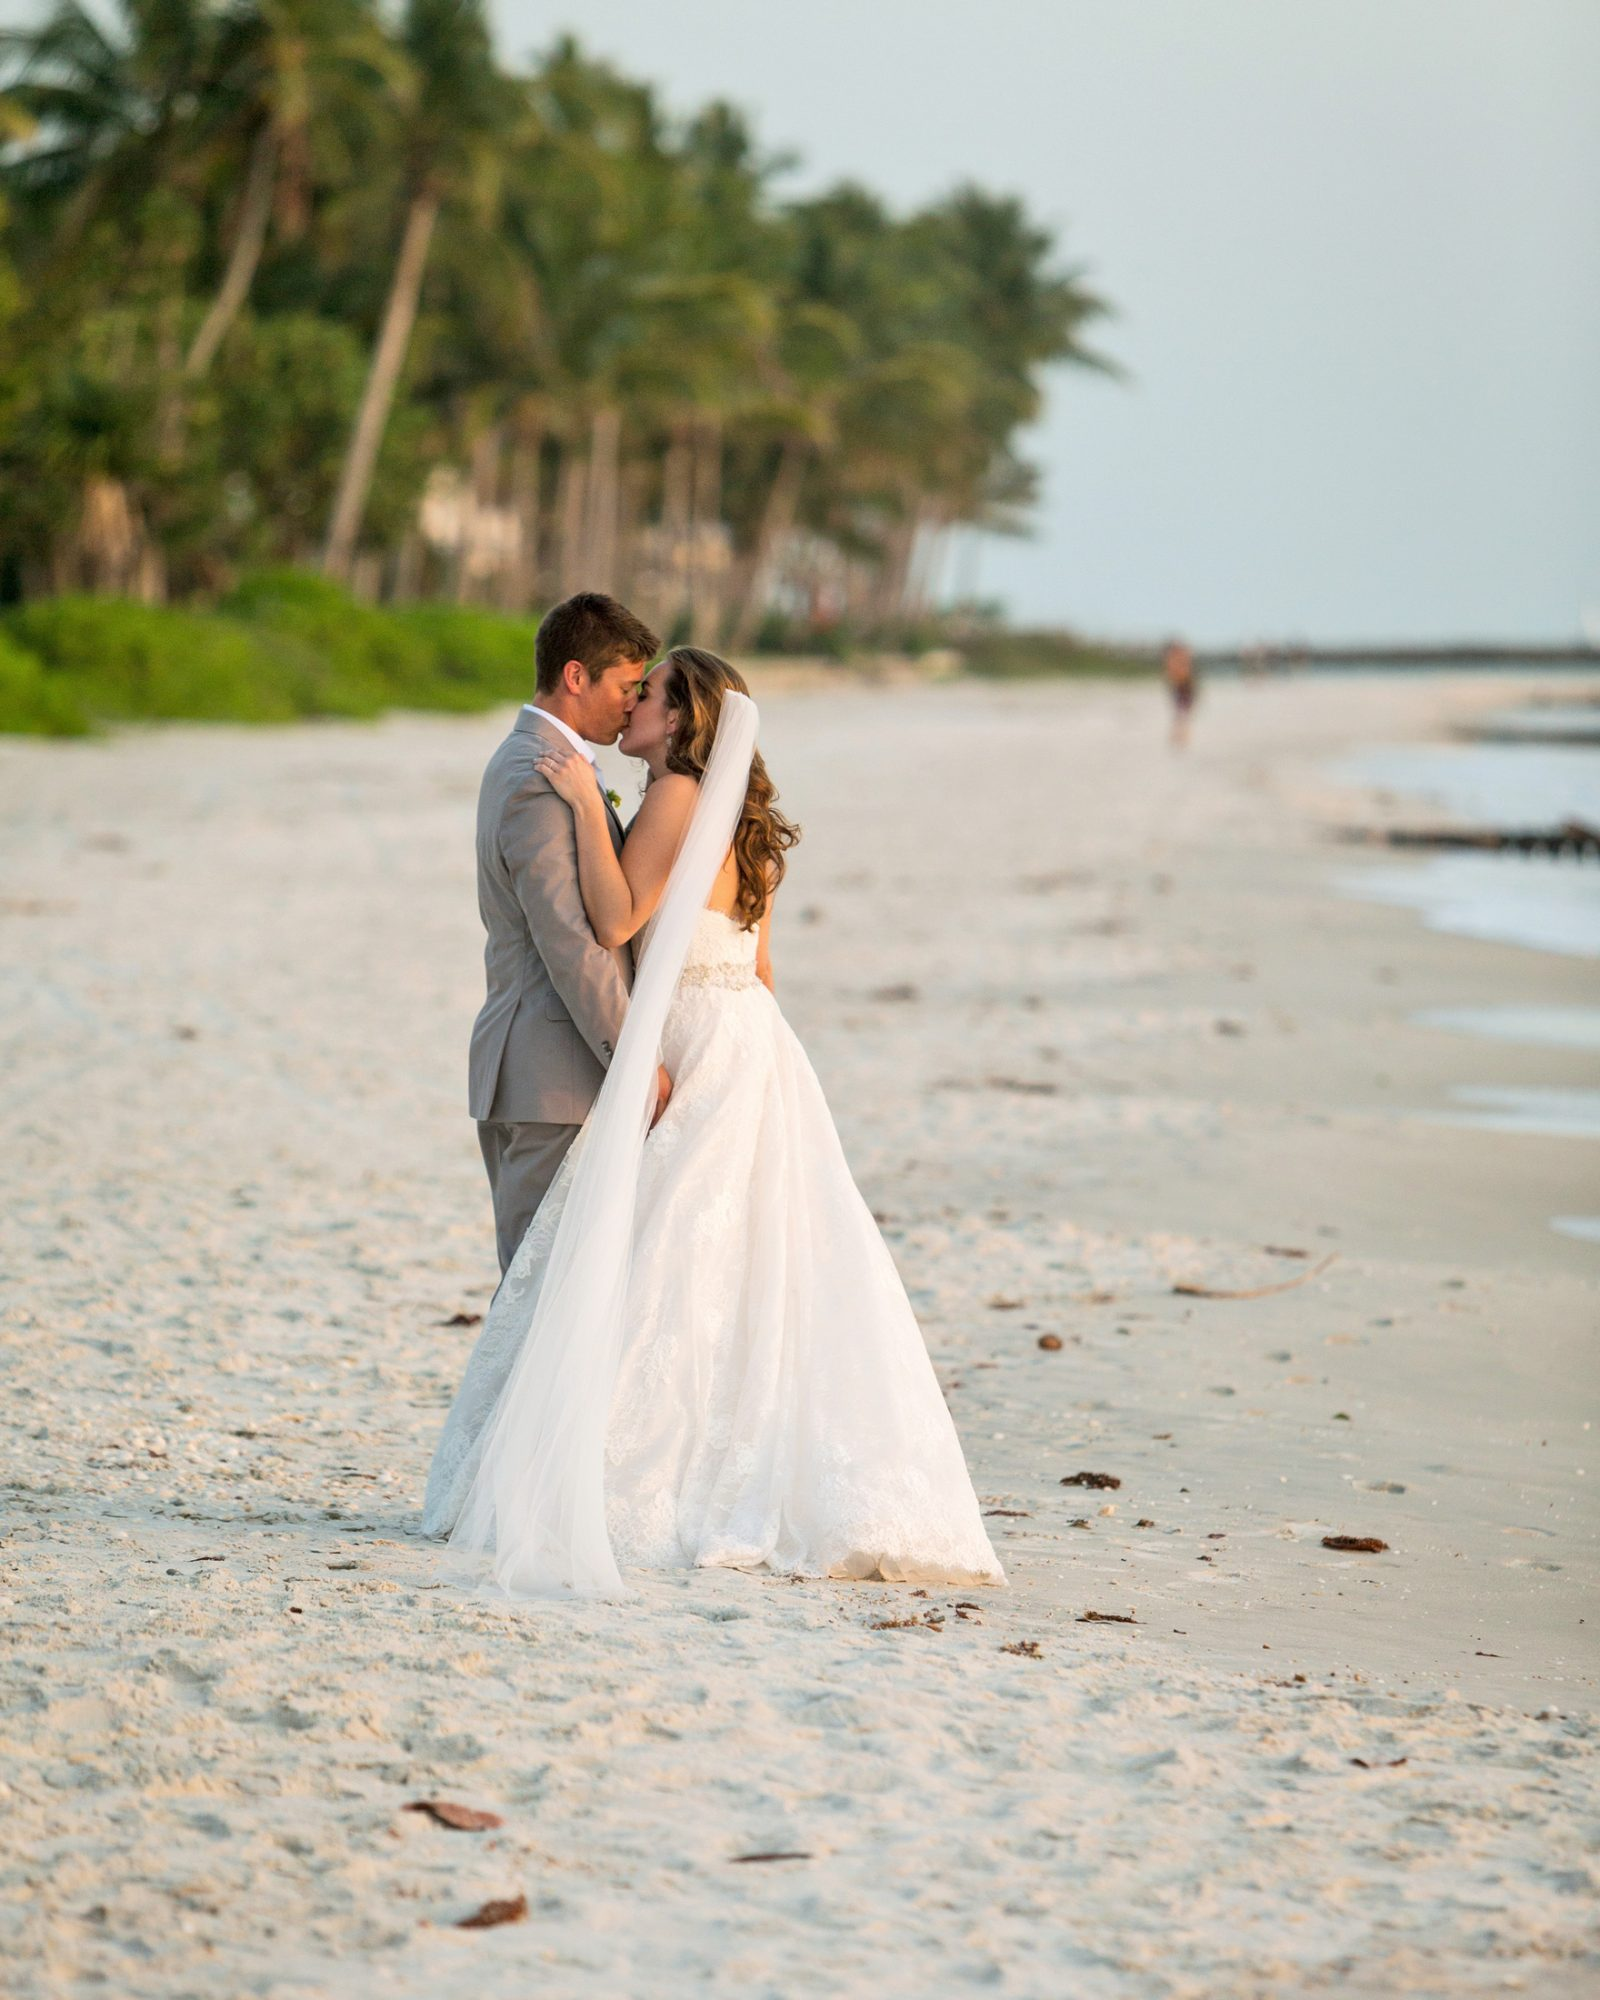 erin-ryan-florida-wedding-couple-beach-1039-s113010-0516.jpg